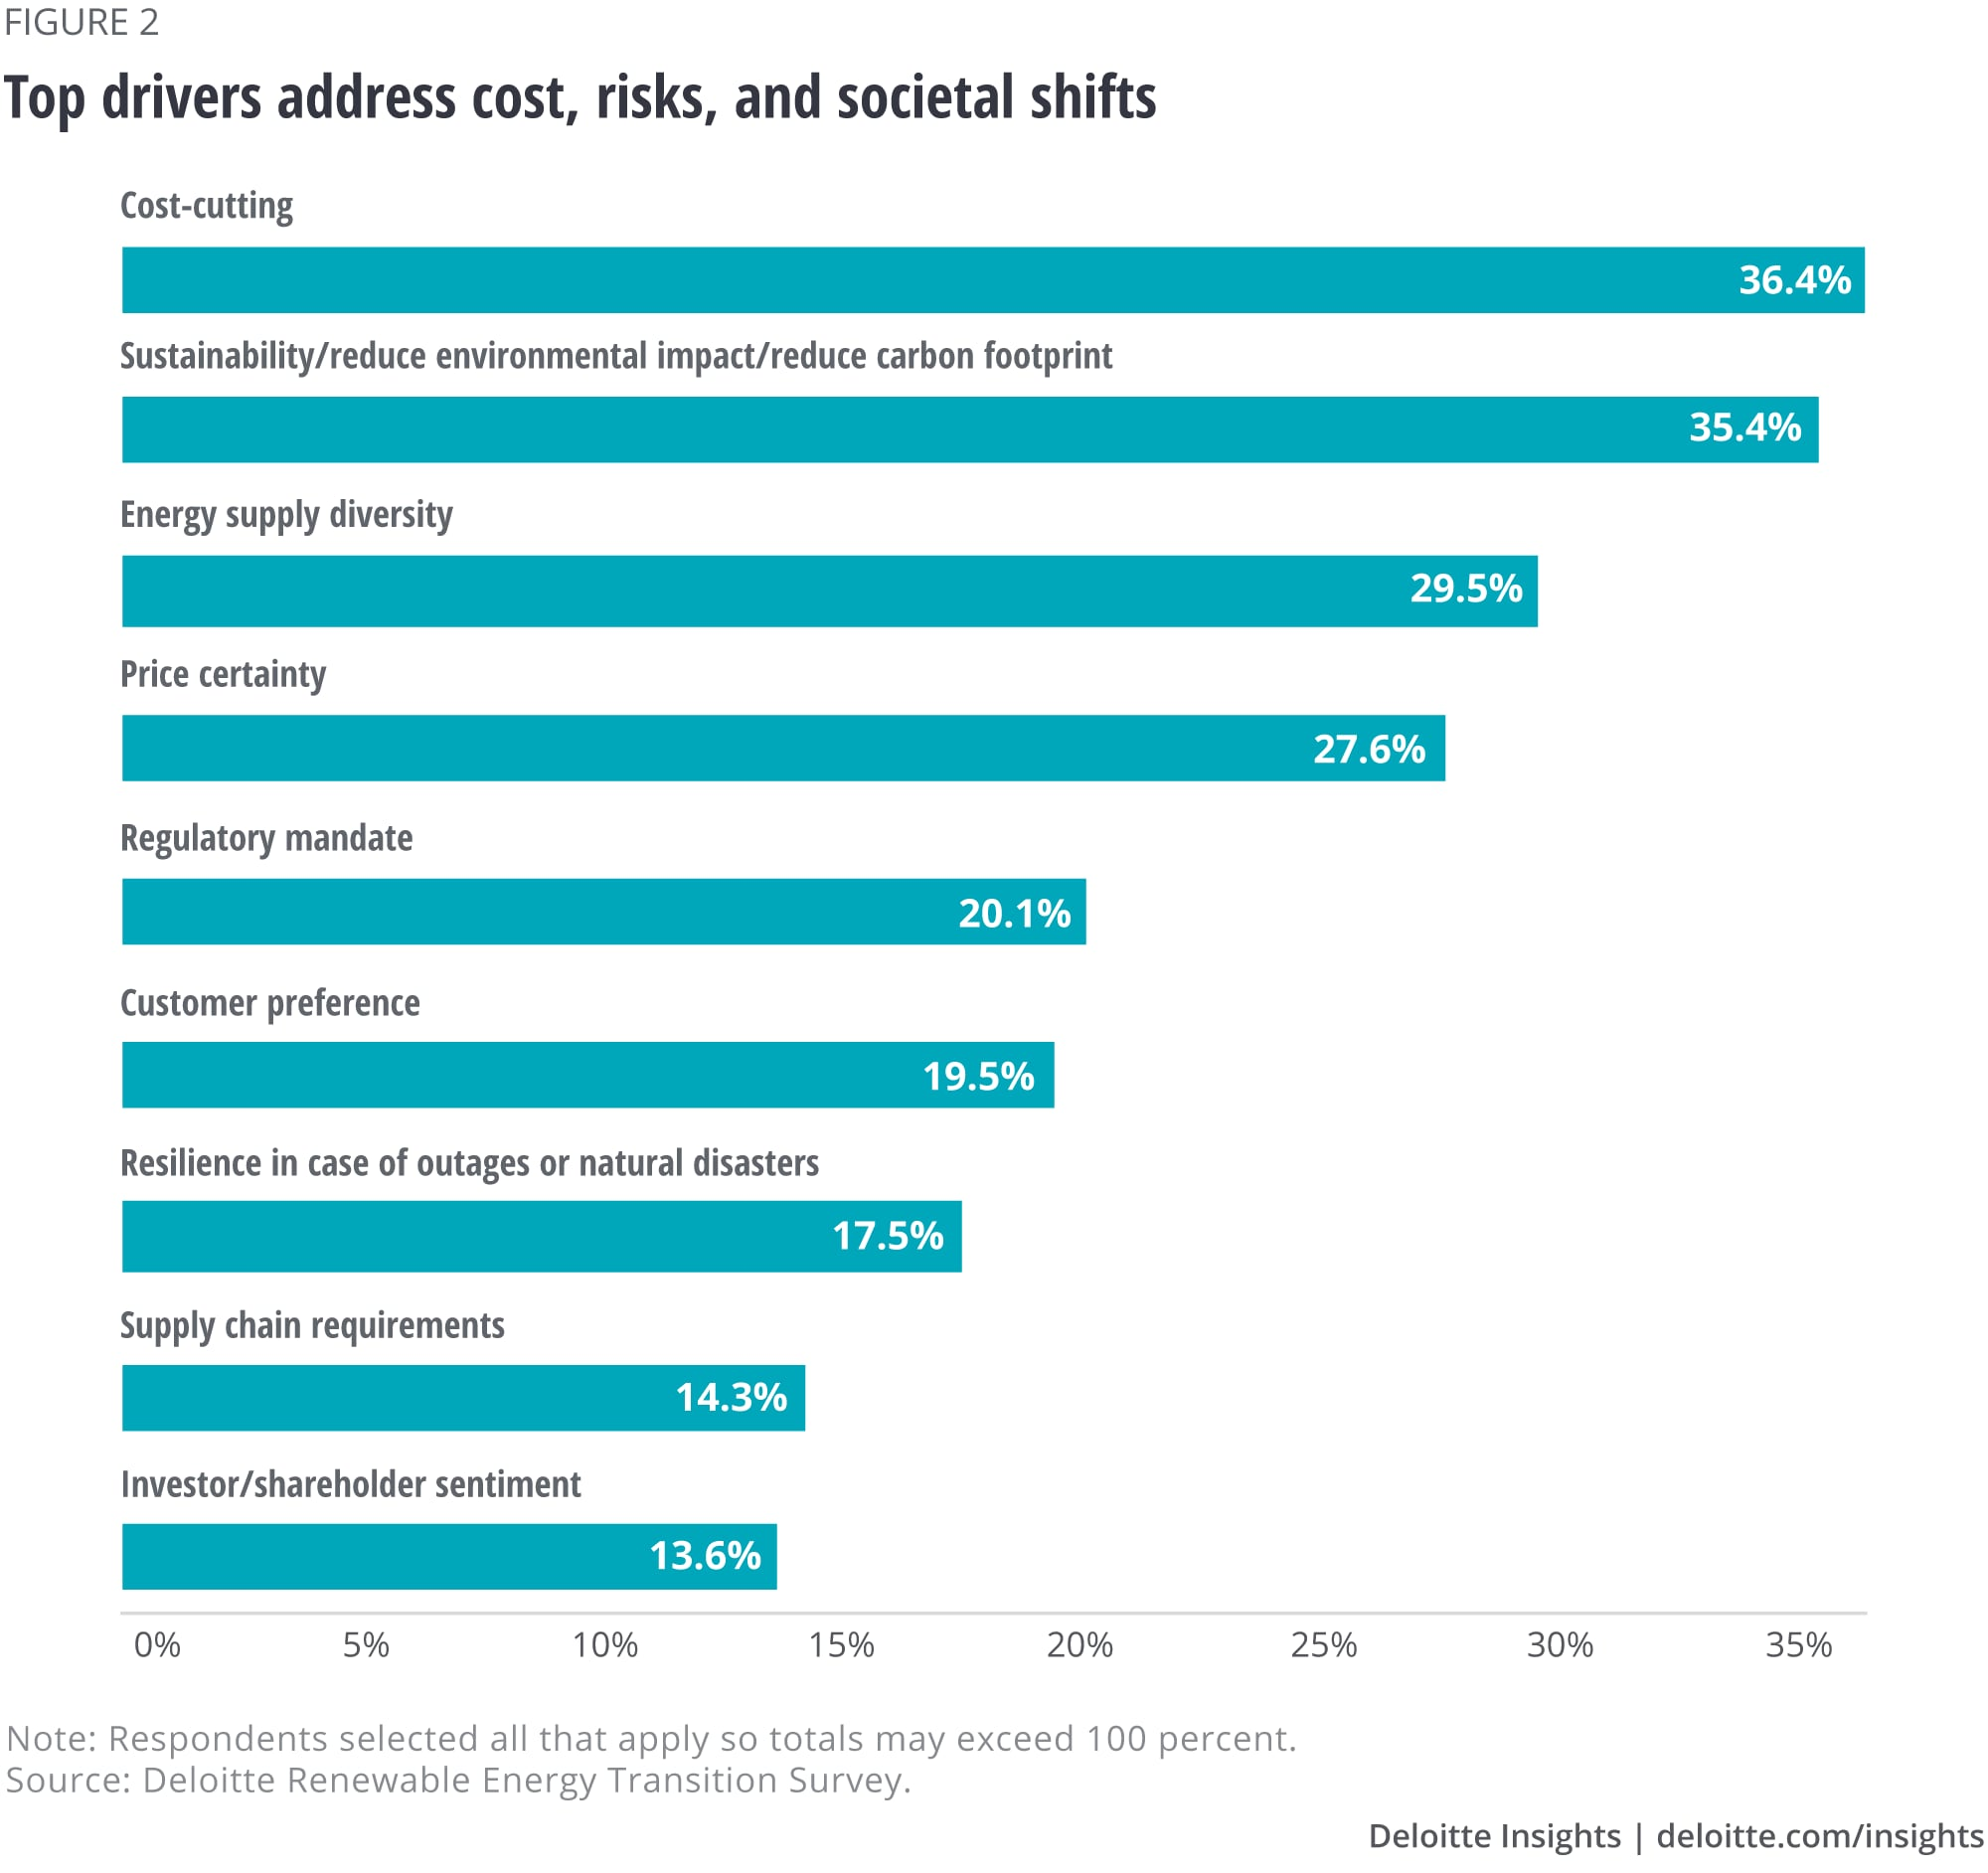 Top drivers address cost, risks, and societal shifts